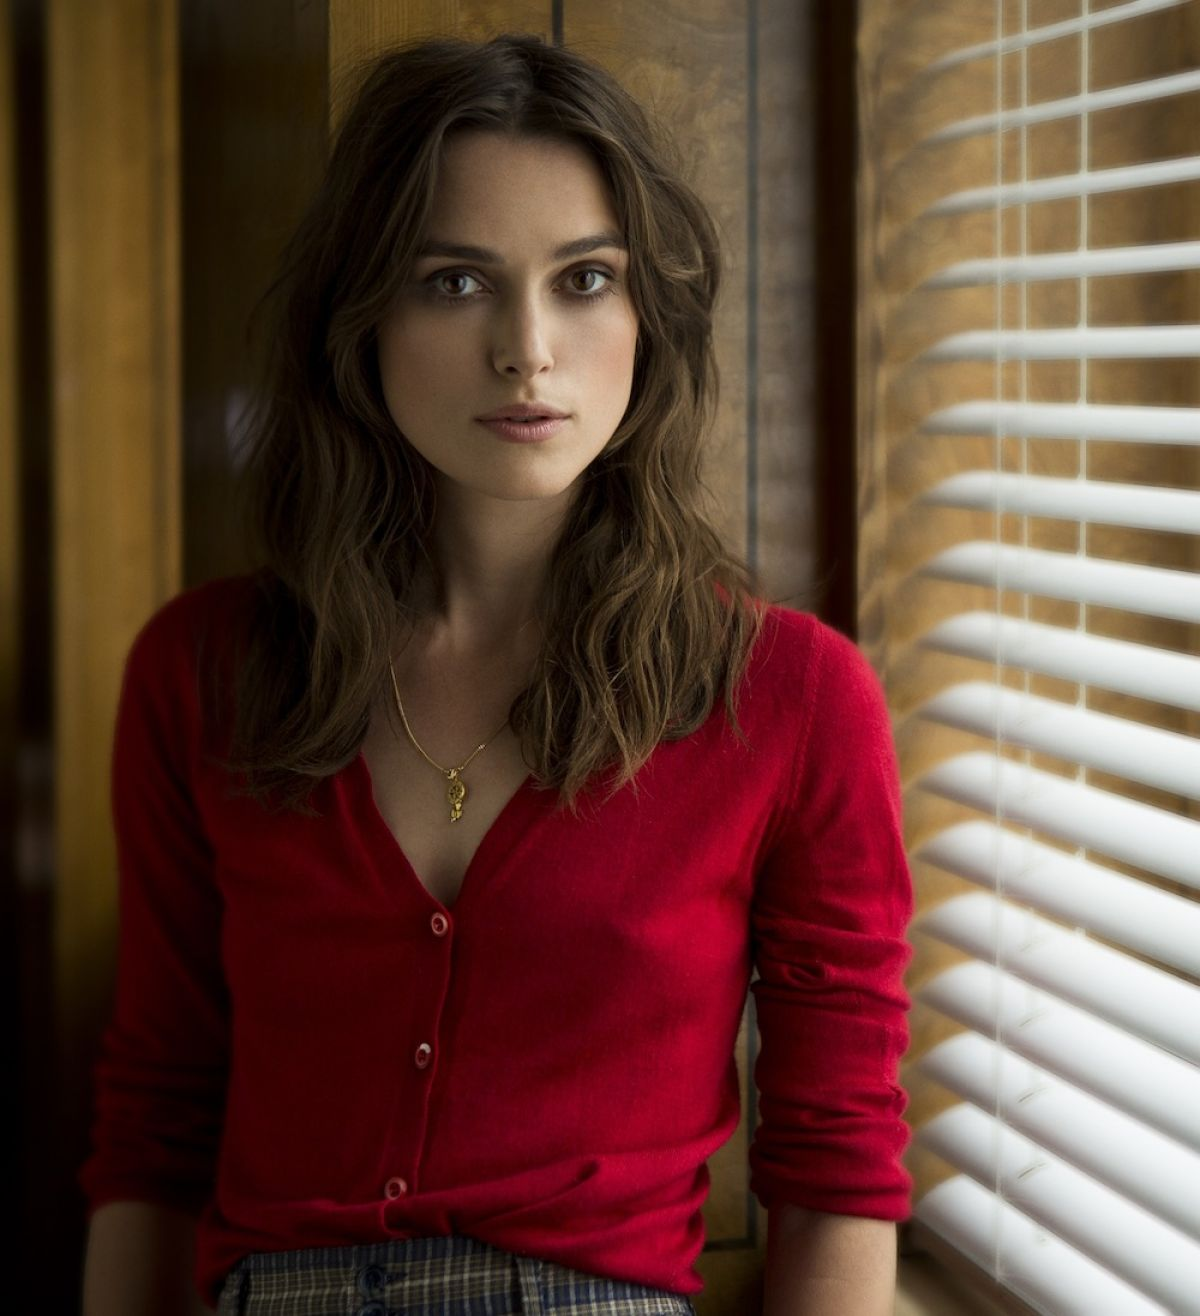 KEIRA KNIGHTLEY - Time Out Photoshoot